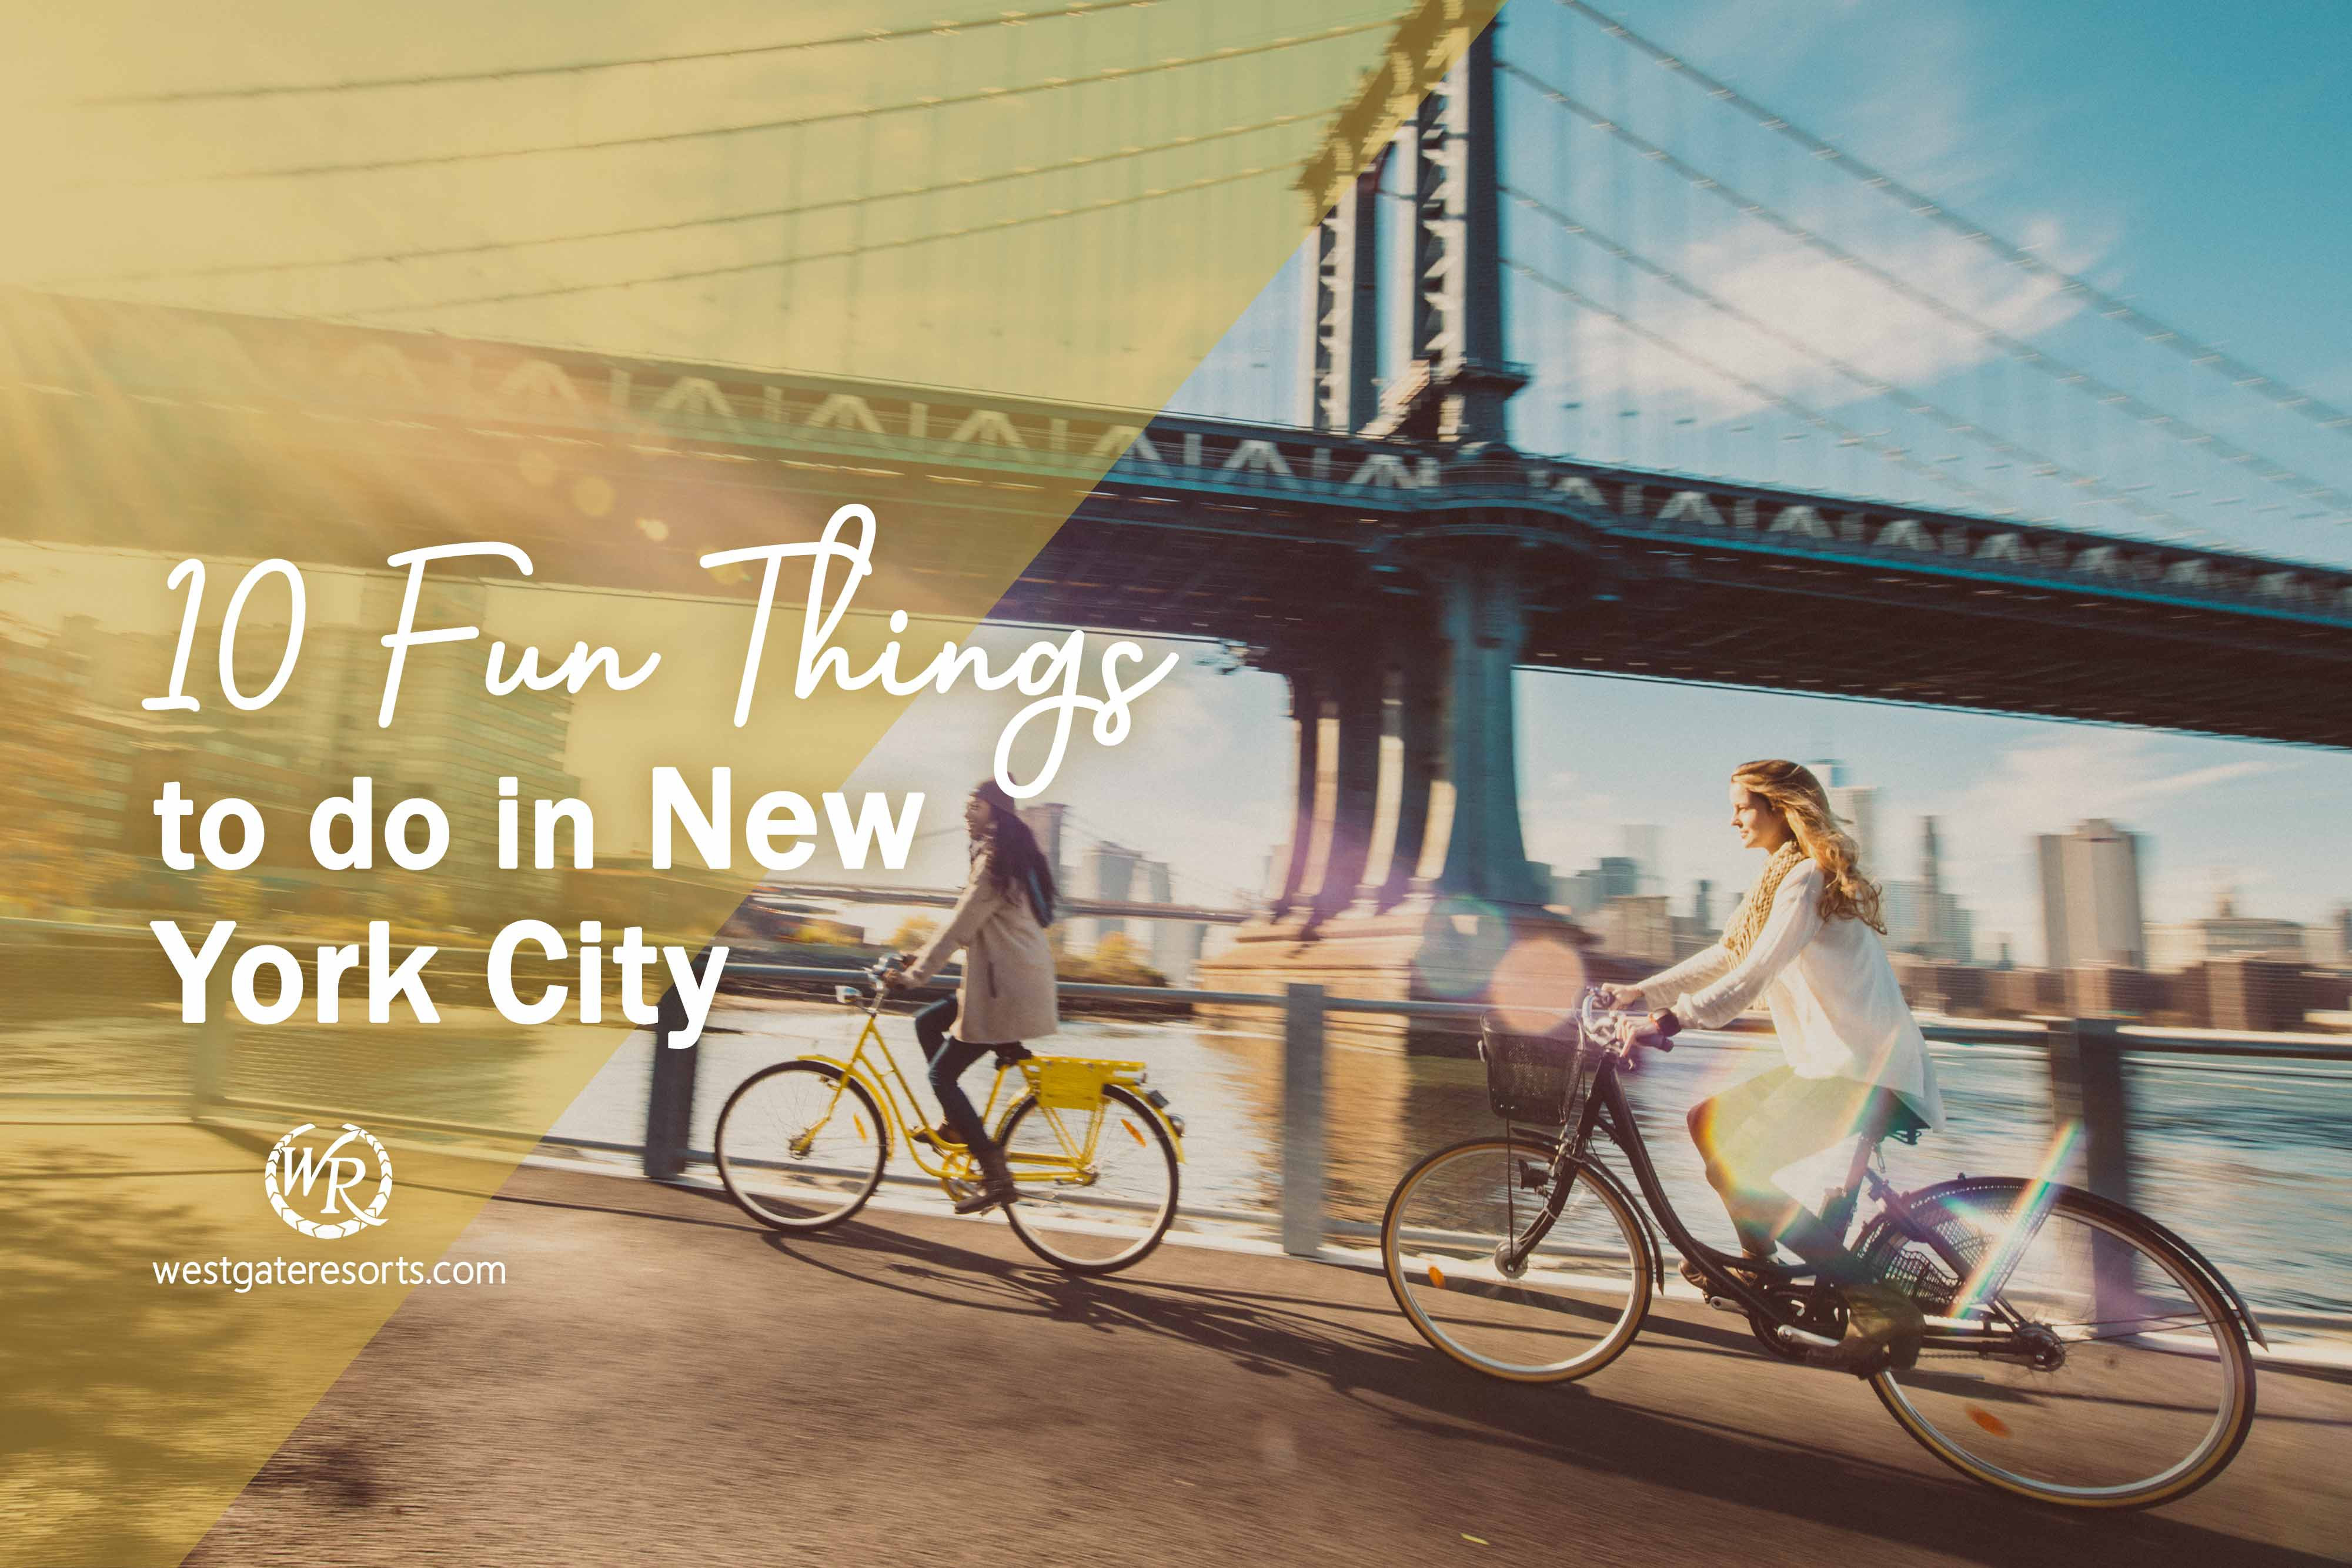 10 Fun Things to do in New York City